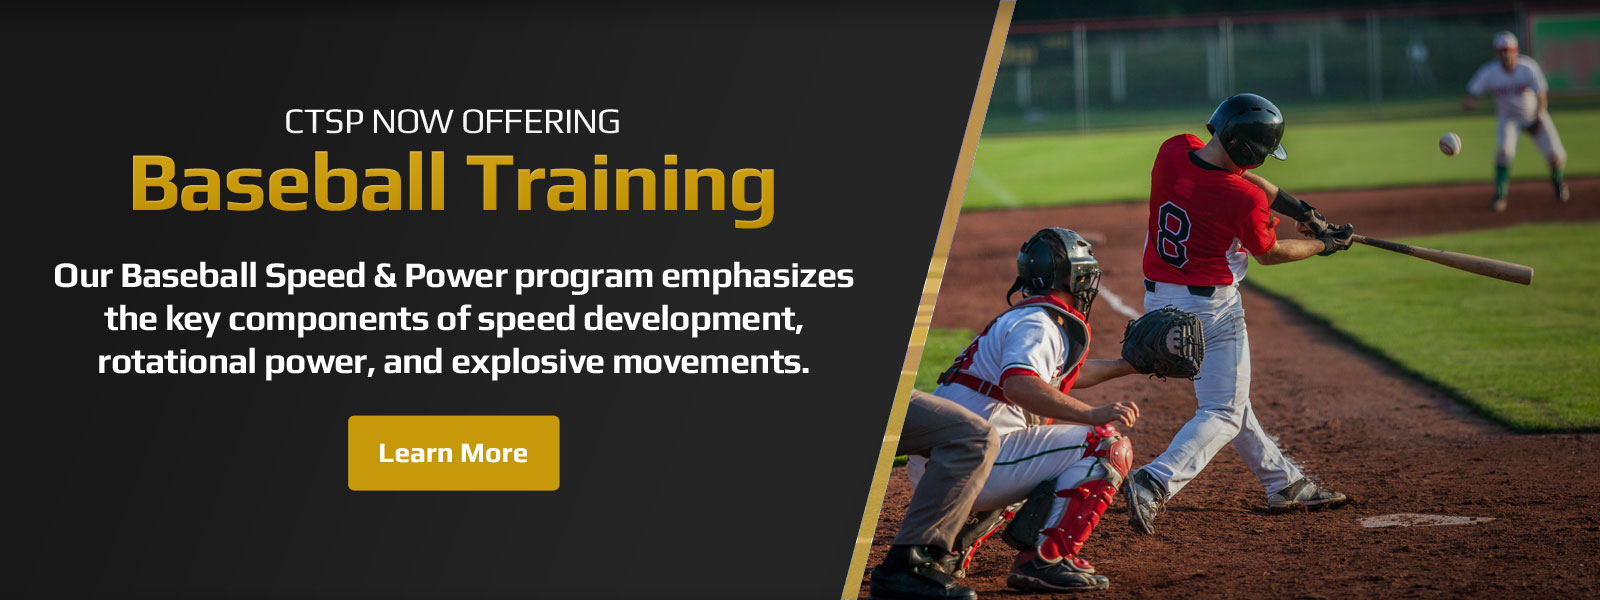 baseball training louisville kentucky